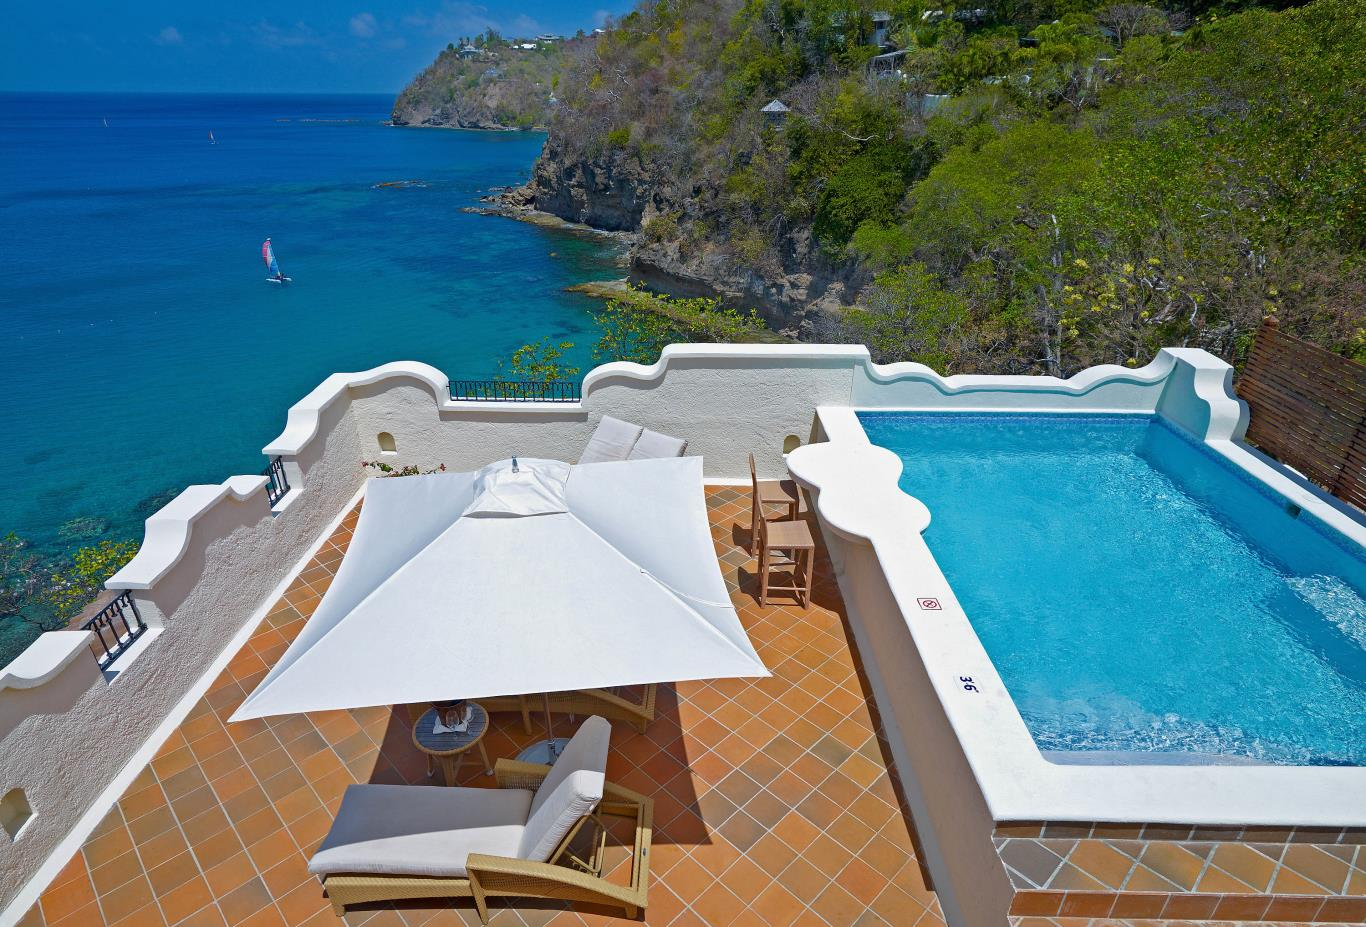 Ocean View Villa Suite with Pool and Roof Terrace